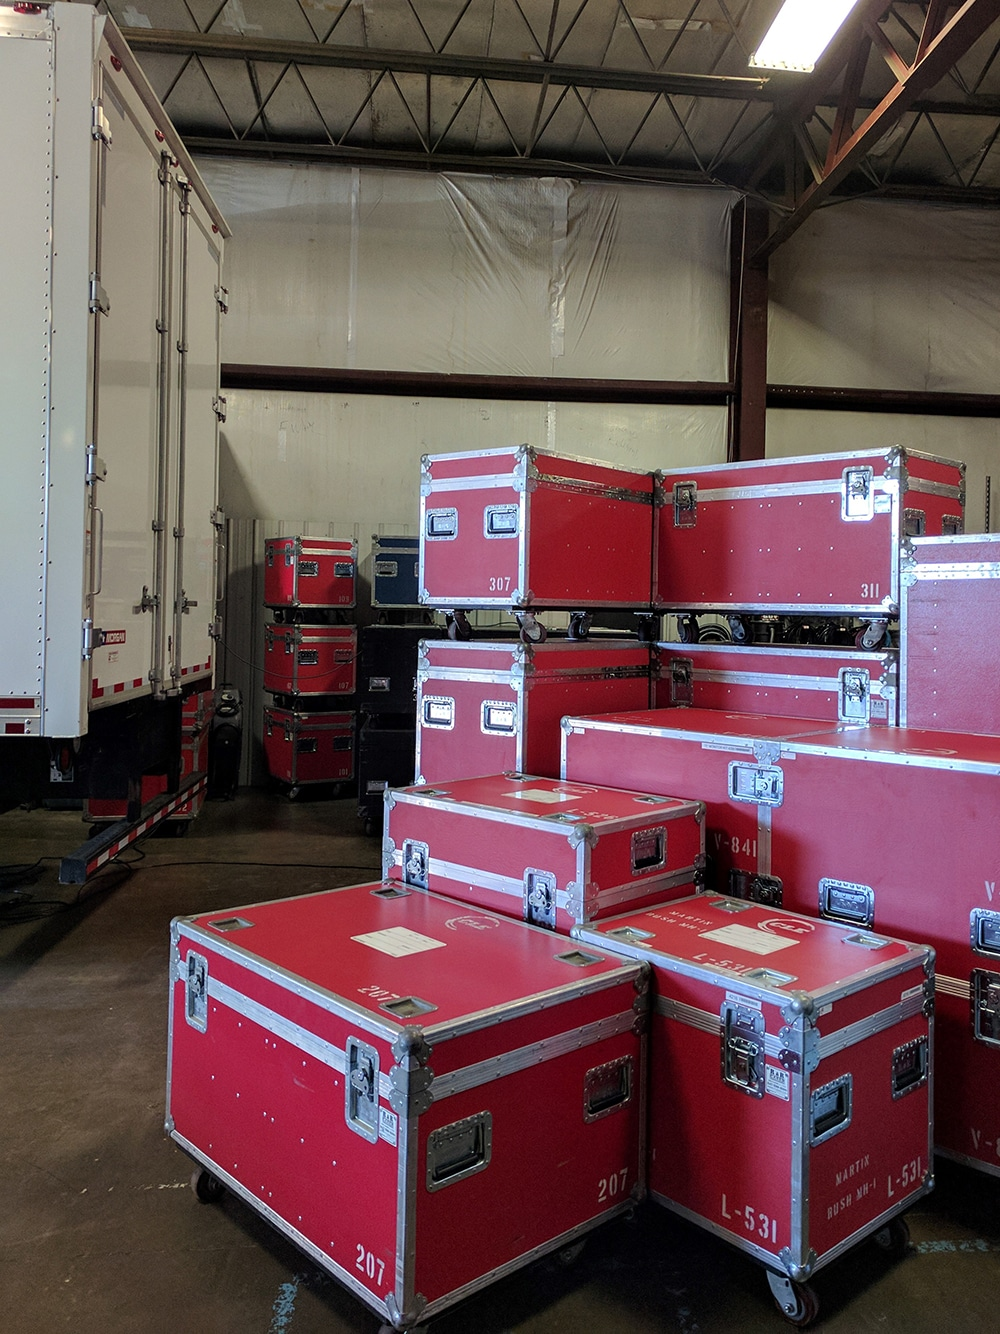 Preparing for Event Tool Boxes